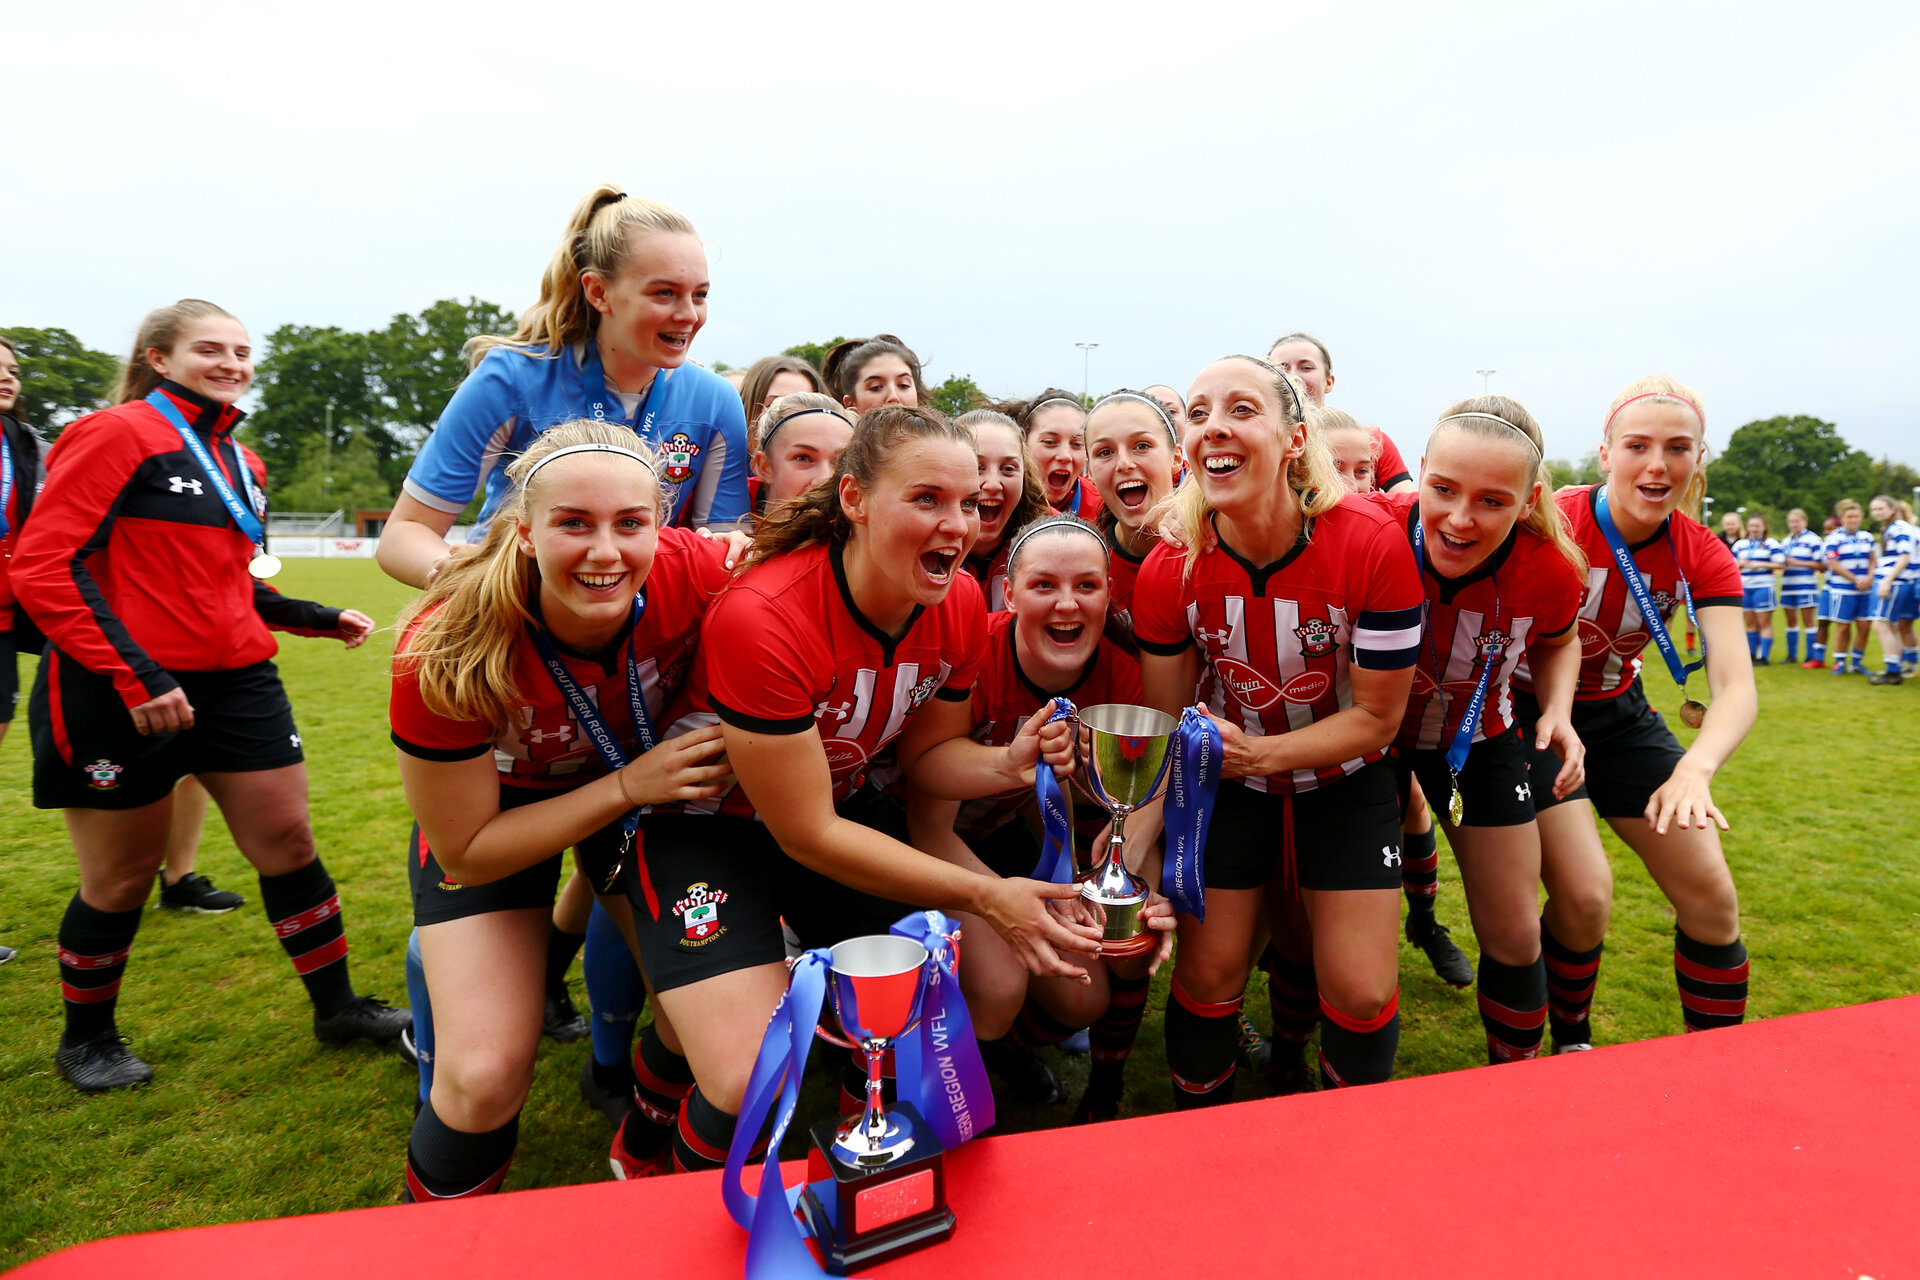 SOUTHAMPTON, ENGLAND - MAY 19: Women's team win and lift the trophy after the Womens Cup Final match between Southampton FC and Oxford pictured at AFC Totten on May 19, 2019 in Southampton, England. (Photo by James Bridle - Southampton FC/Southampton FC via Getty Images)